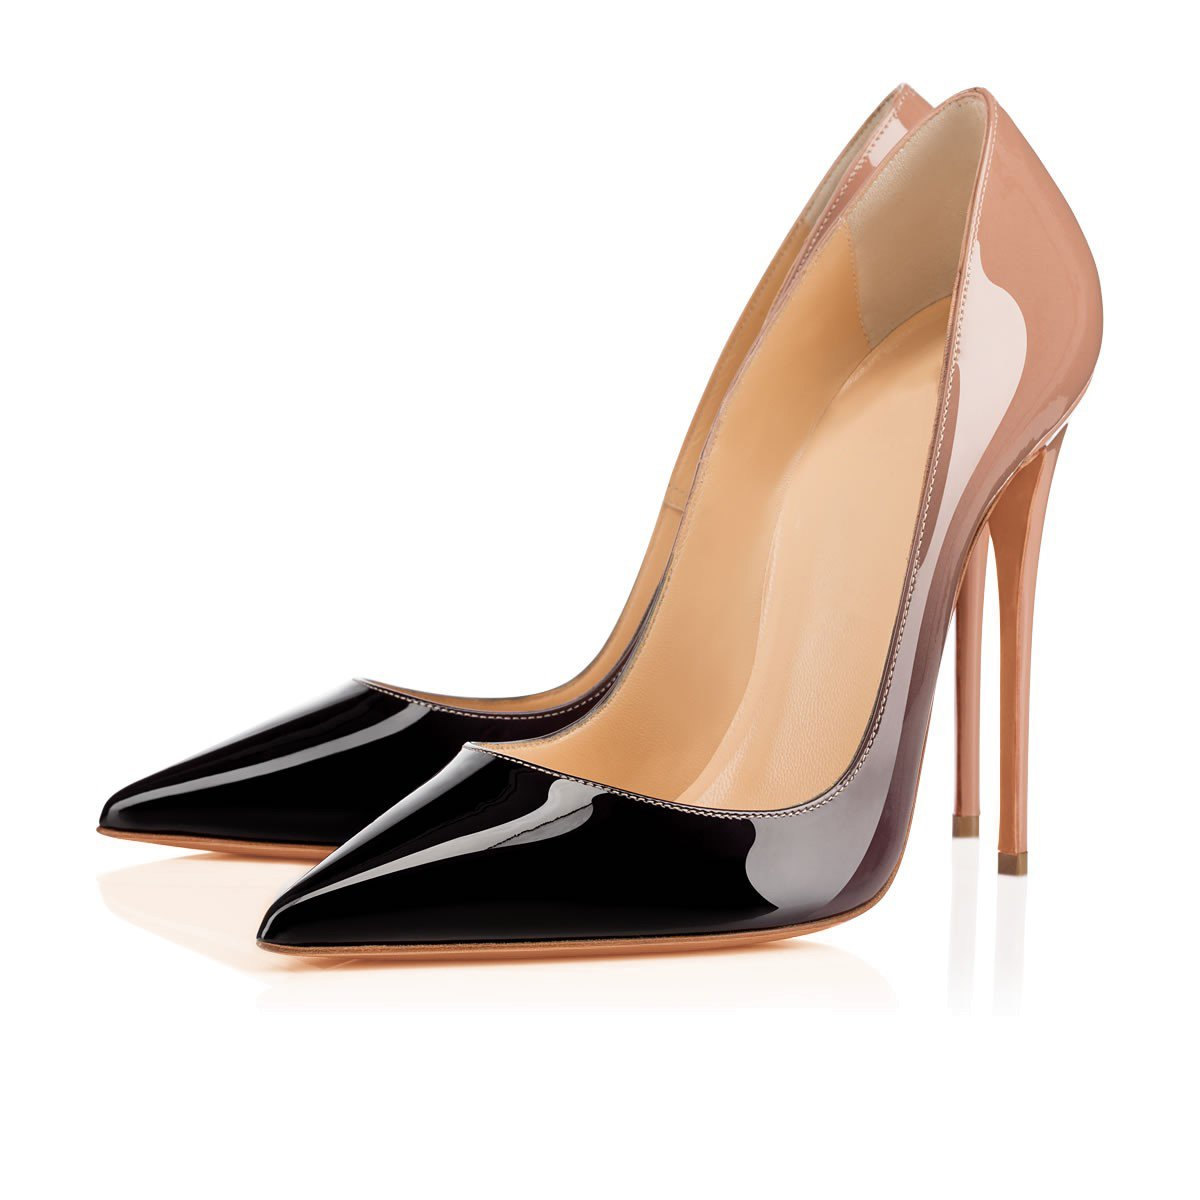 Arc-en-Ciel007 Womens Shoes Pointed Toe High Heel Patent Leather Pump